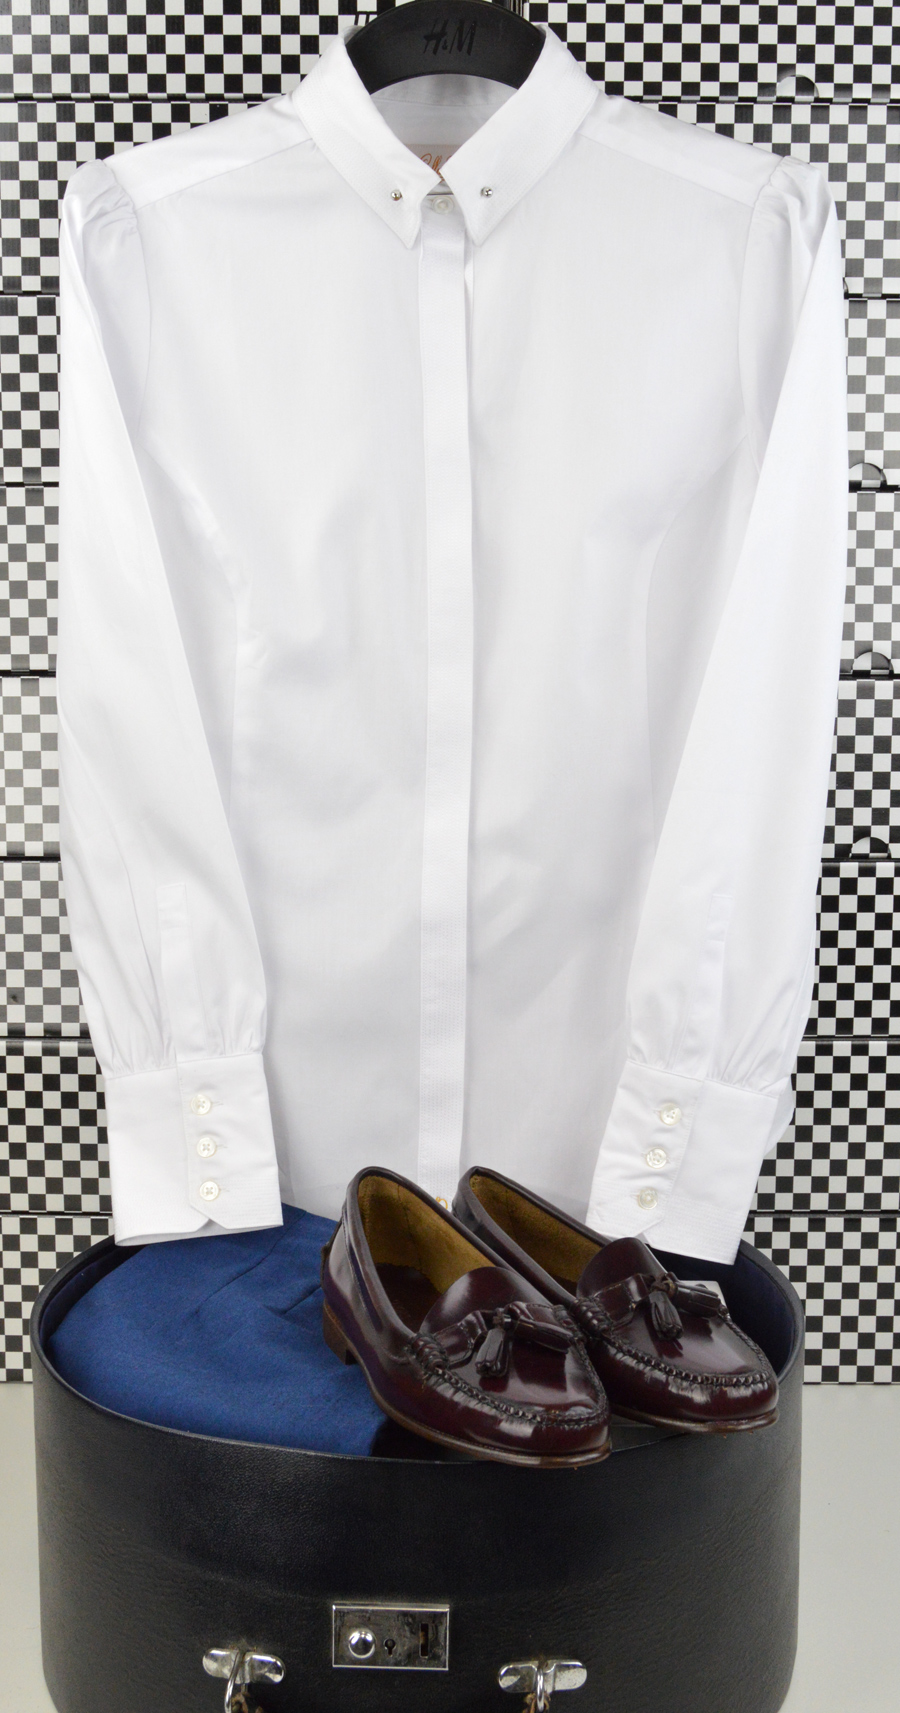 modshoes-ladies-hawkins-shirt-with-ladies-leather-labelles-02